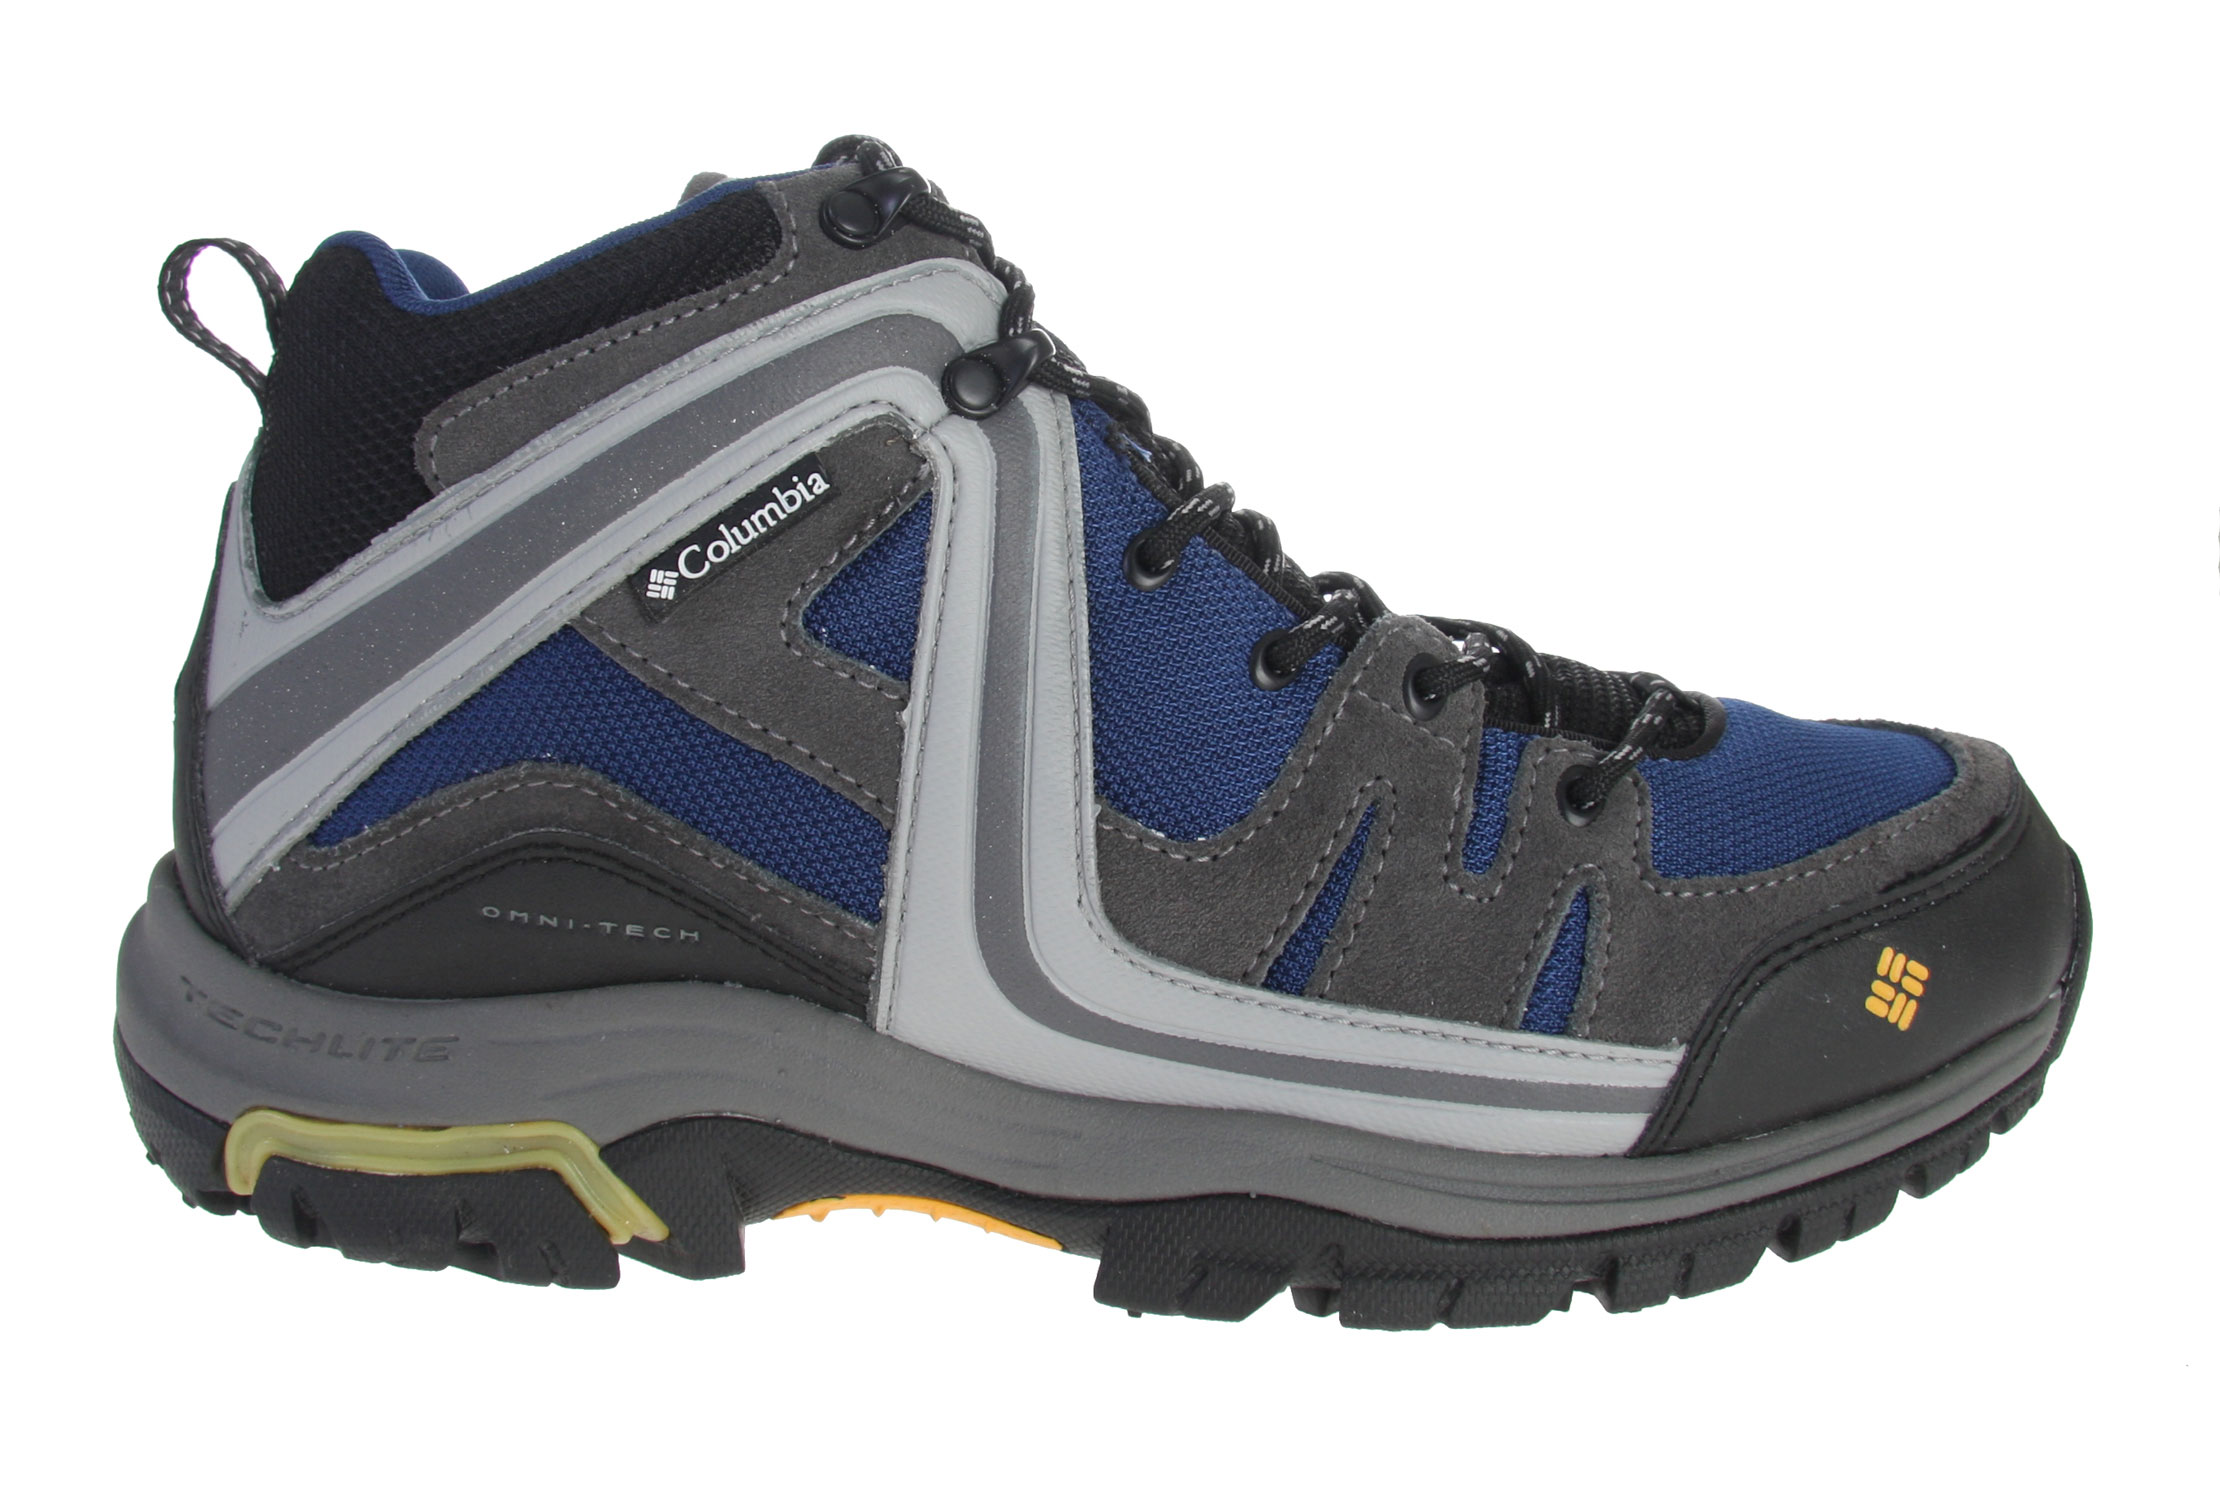 MTB Are you ready to enjoy the outdoors again but don't have the right shoes yet  Well the Columbia Shastalavista mid hiking shoes windsor/treasure will have you well taken care of then. Designed for trail hiking, mountain biking, and even our walkers or joggers these will take you to many different places. The open mesh upper with the leather overlays are designed to keep feet cool, comfortable, and supported while your on the trails. The special reinforced rubber toe and rubber heel protection sure will enhance your durability, especially for those bike riders. Inside the shoe, the footbed pulls moisture away from skin while delivering lightweight cushioning and support. The special omni-grip rubber outsole provides suspension and grips the slippy surfaces your going to running and sliding over. So go outside and enjoy these fancy shoes today!!   Key Features of the Columbia Shastalavista Mid Hiking Shoes: Breathable mesh upper with Nubuck leather and PU-coated overlays Durable mesh collar Removable Contour Comfort 1D footbed with wicking treatment Injection-molded tuned TPU shank Compression-molded Techlite for lightweight cushioning and comfort Non-marking Omni-Grip rubber compound outsole with Kinetic Response Weight: Size 9, 1/2 pair=15.1 oz/429g - $87.95